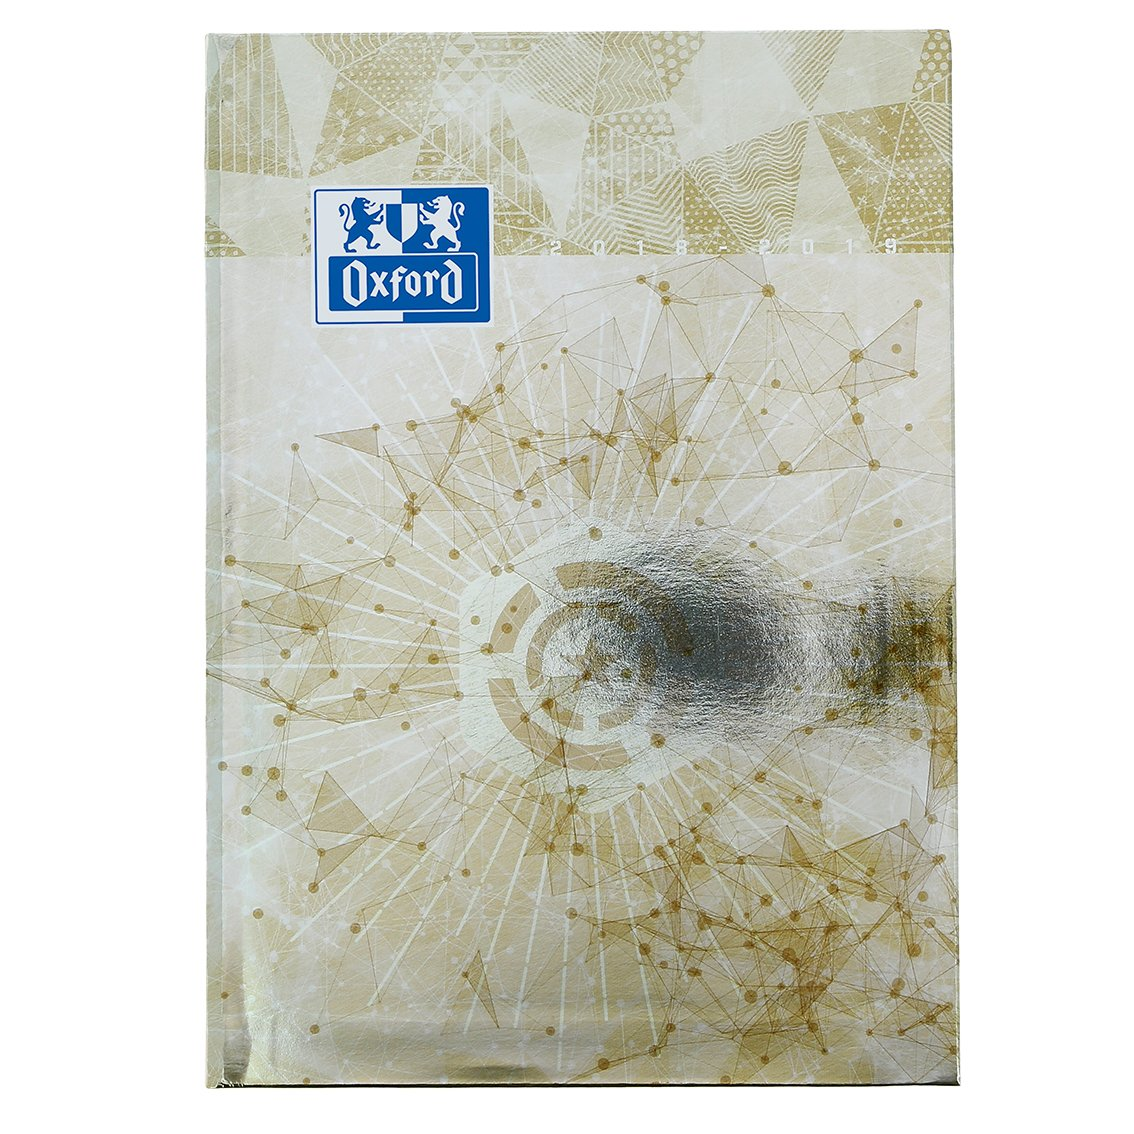 Oxford 100735705 Metal 2018-2019 Daily School Diary Day A Page, 15 x 21 cm, Champagne